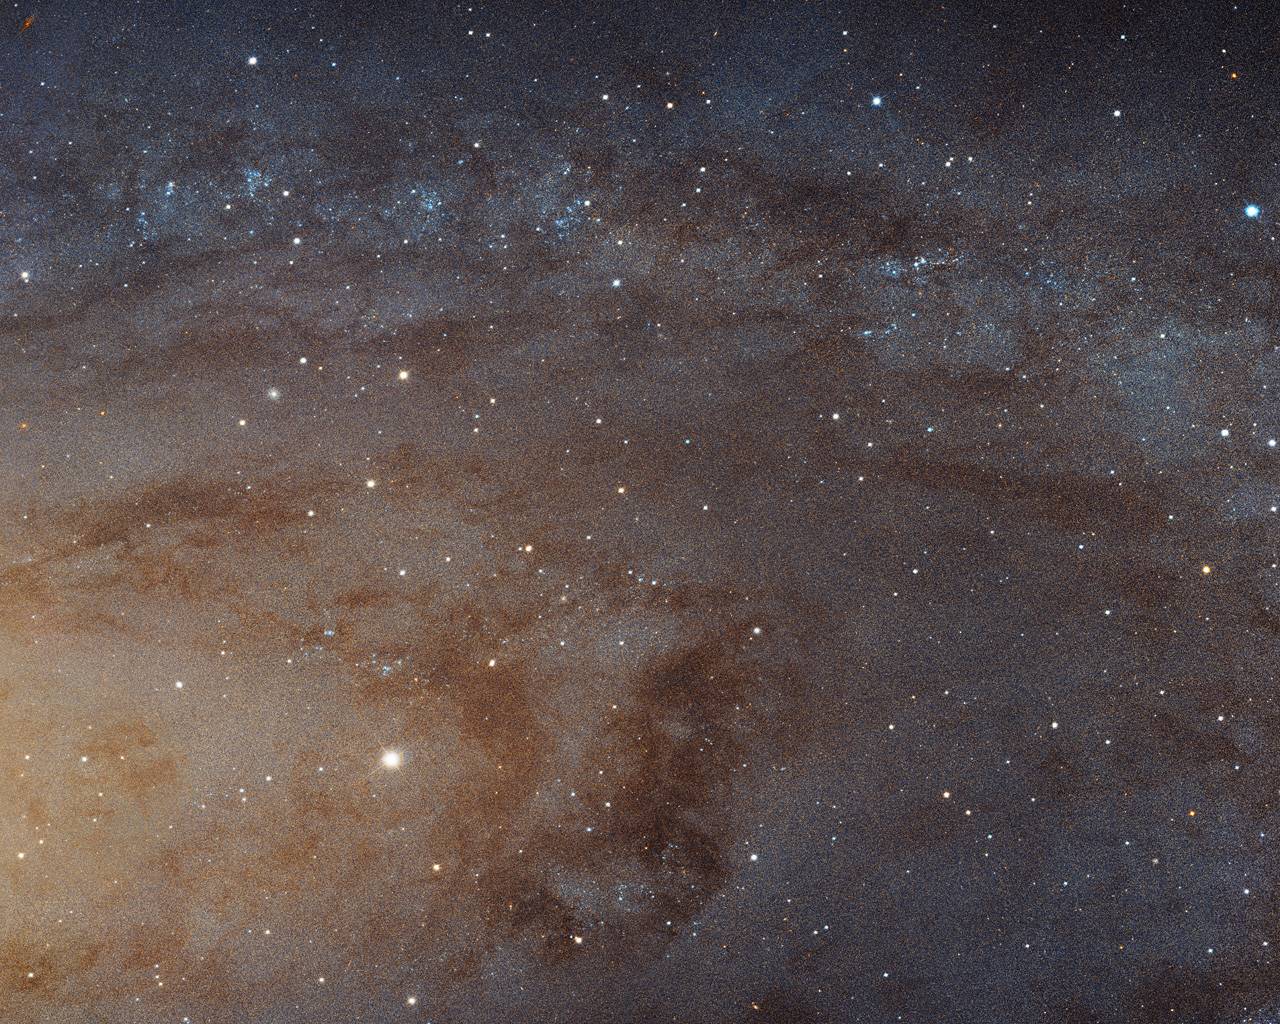 Sharpest ever view of the Andromeda Galaxy | ESA/Hubble